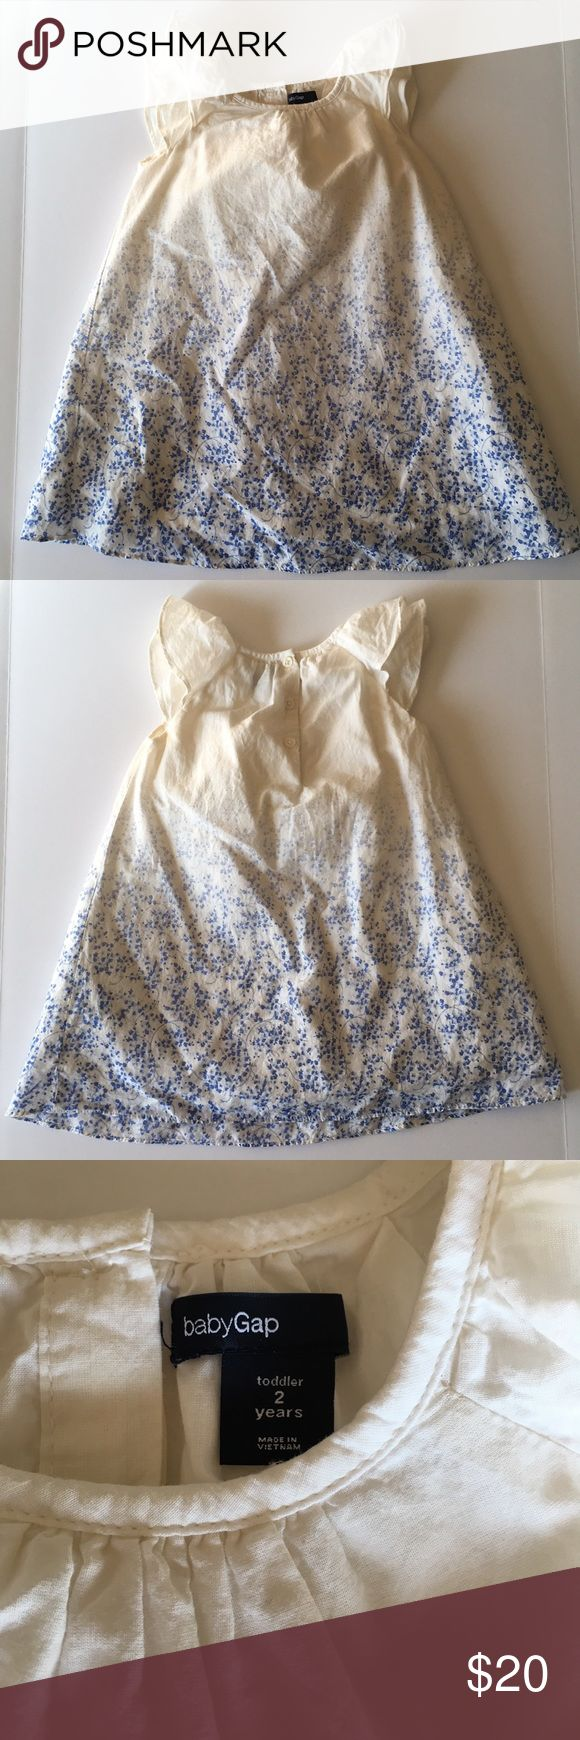 Baby Gap Dress Little blue flower Baby Gap dress   Worn and washed  No bloomers  Size 2 years Smoke free home GAP Dresses Casual